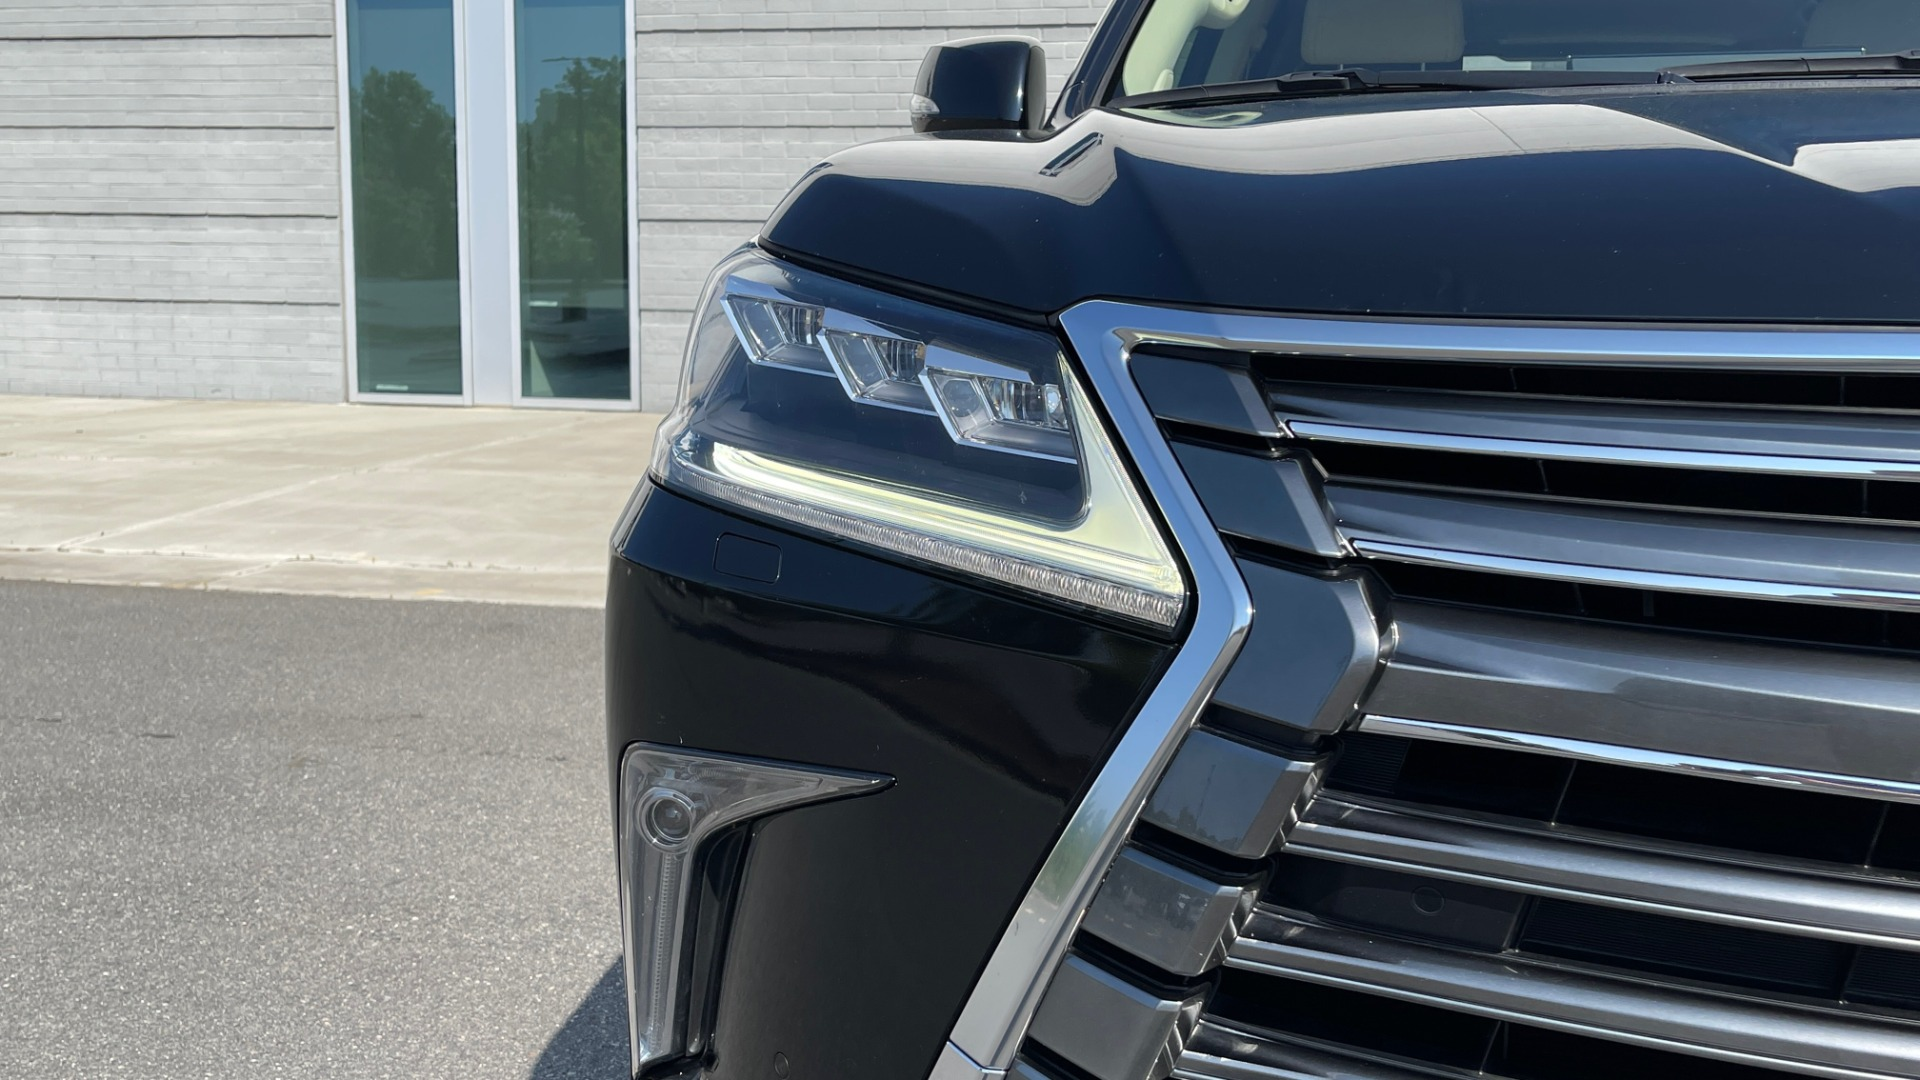 Used 2017 Lexus LX 570 LUXURY / 5.7L V8 / NAV / SUNROOF / 3-ROW / DVD / REARVIEW for sale $63,995 at Formula Imports in Charlotte NC 28227 10